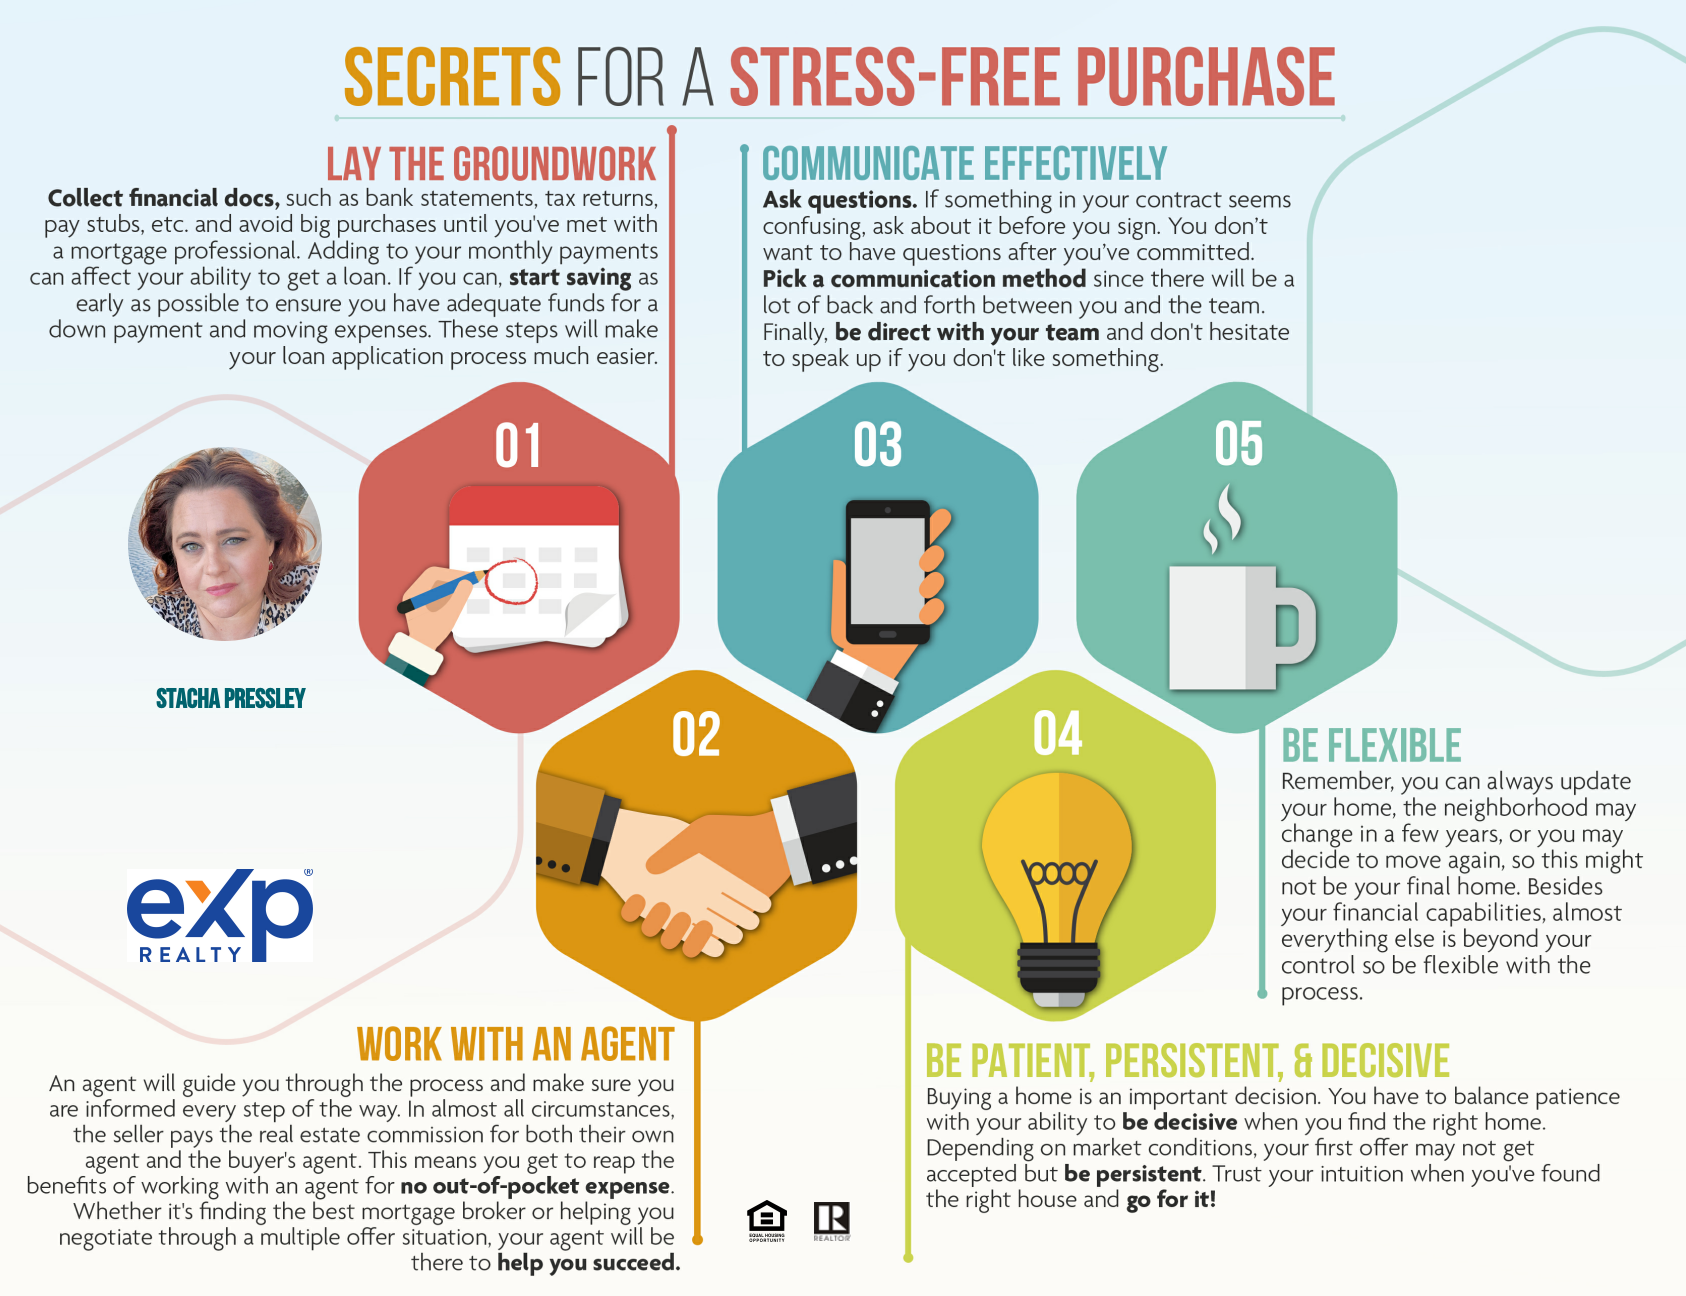 Buying or Selling a Home Stree-Free